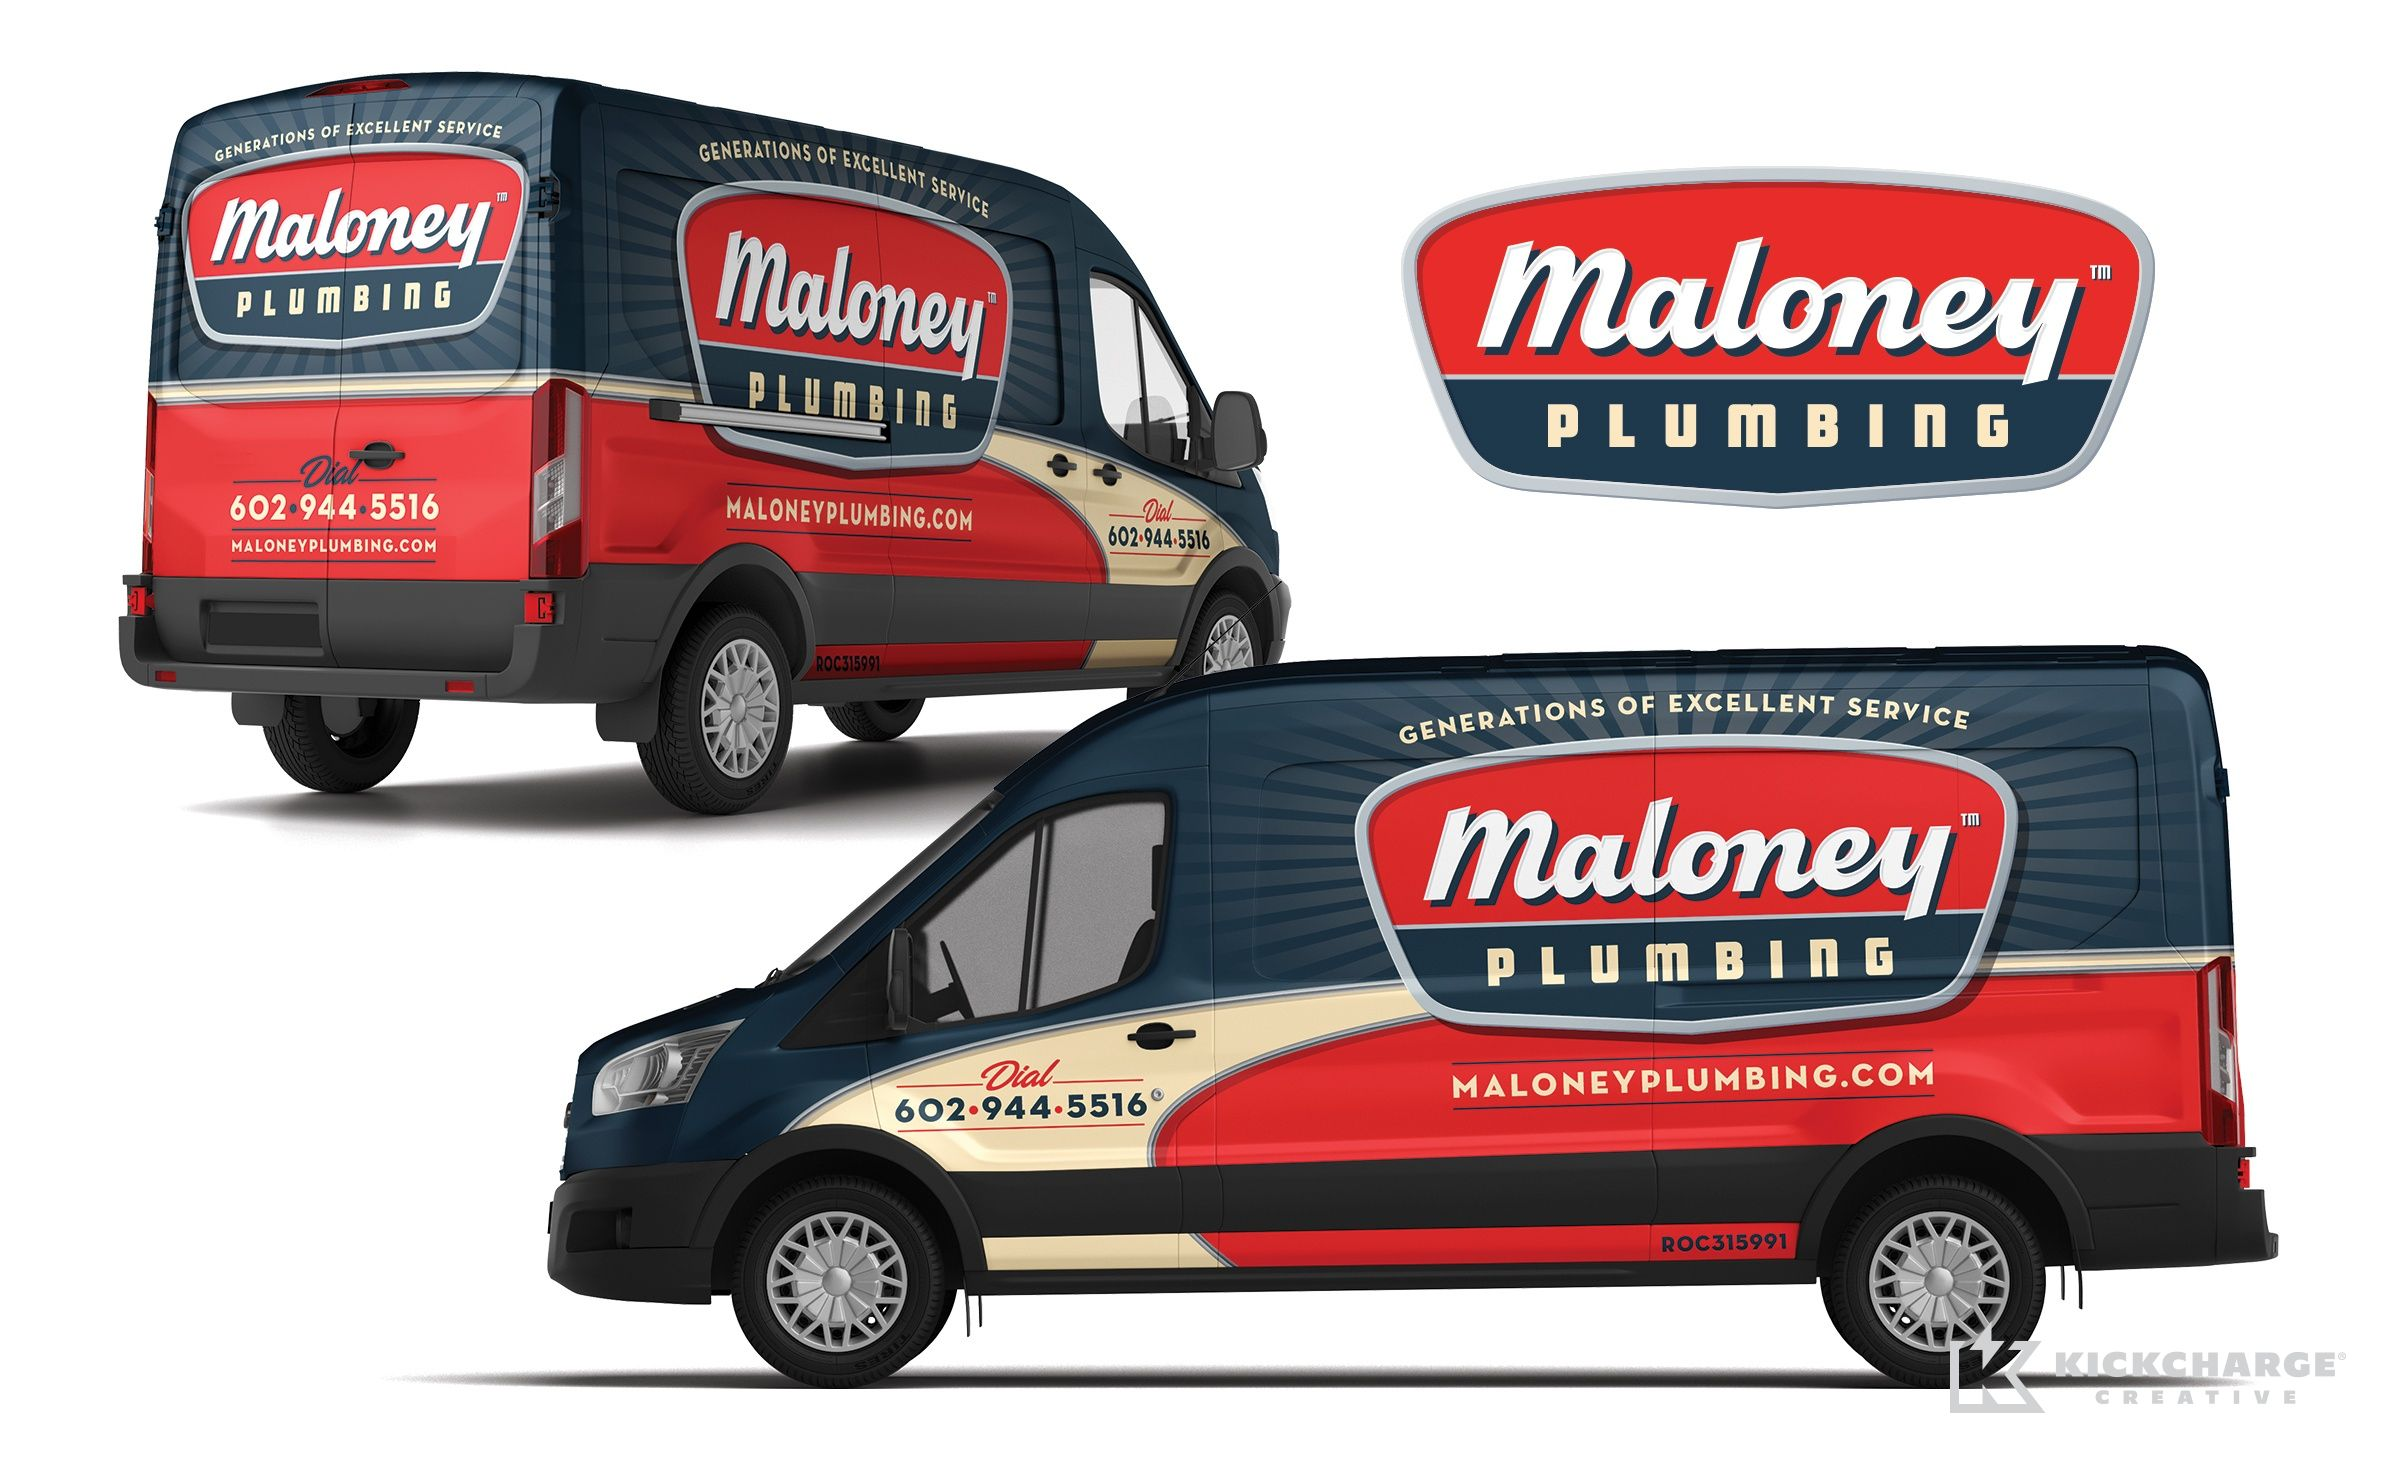 Vehicle Wrap Design For Maloney Plumbing A Plumbing Contractor In